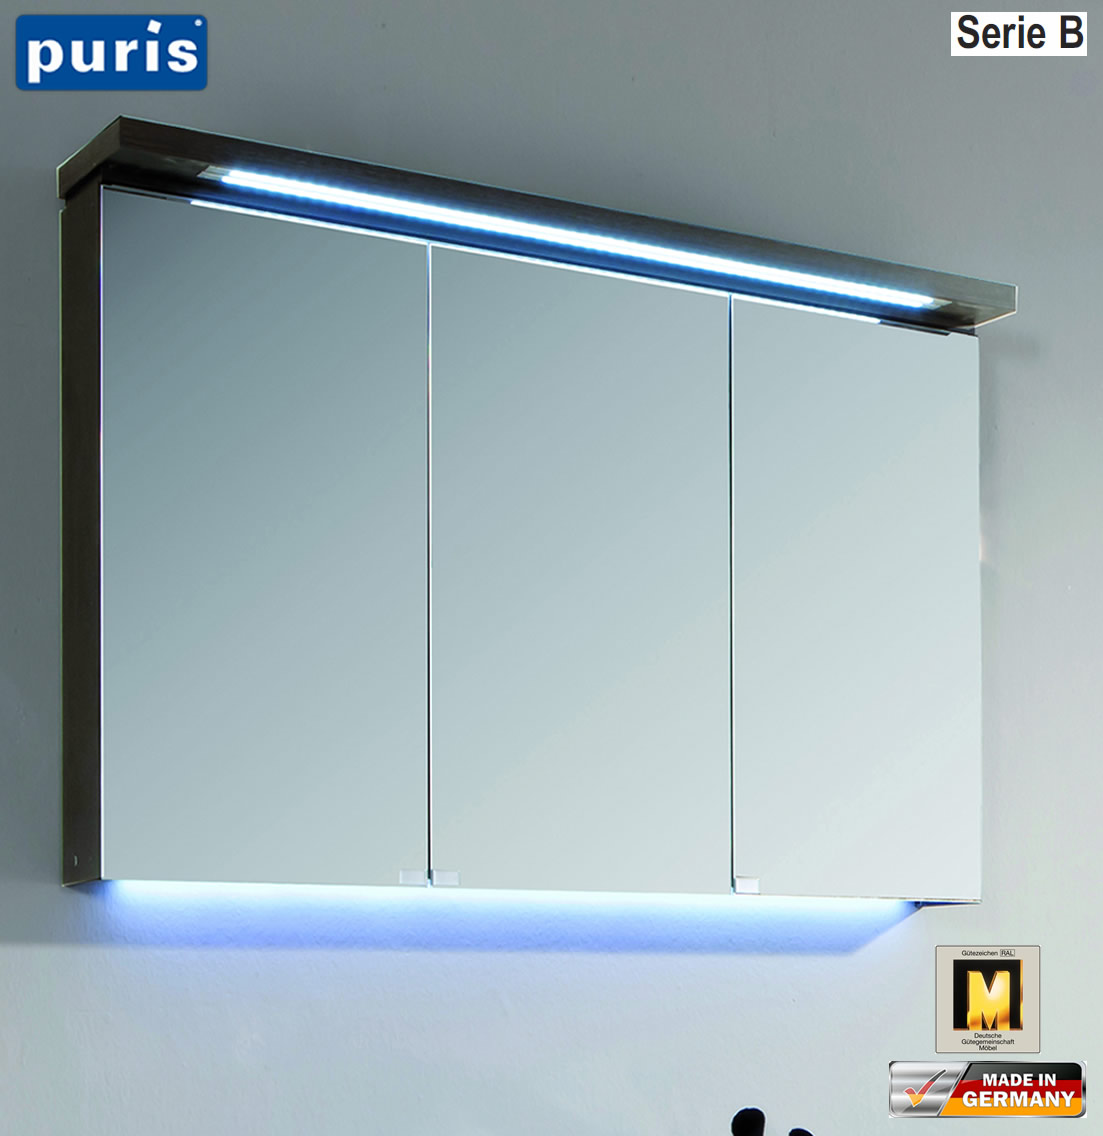 puris cool line spiegelschrank 90 cm mit led gesims s2a439a20 impuls home. Black Bedroom Furniture Sets. Home Design Ideas